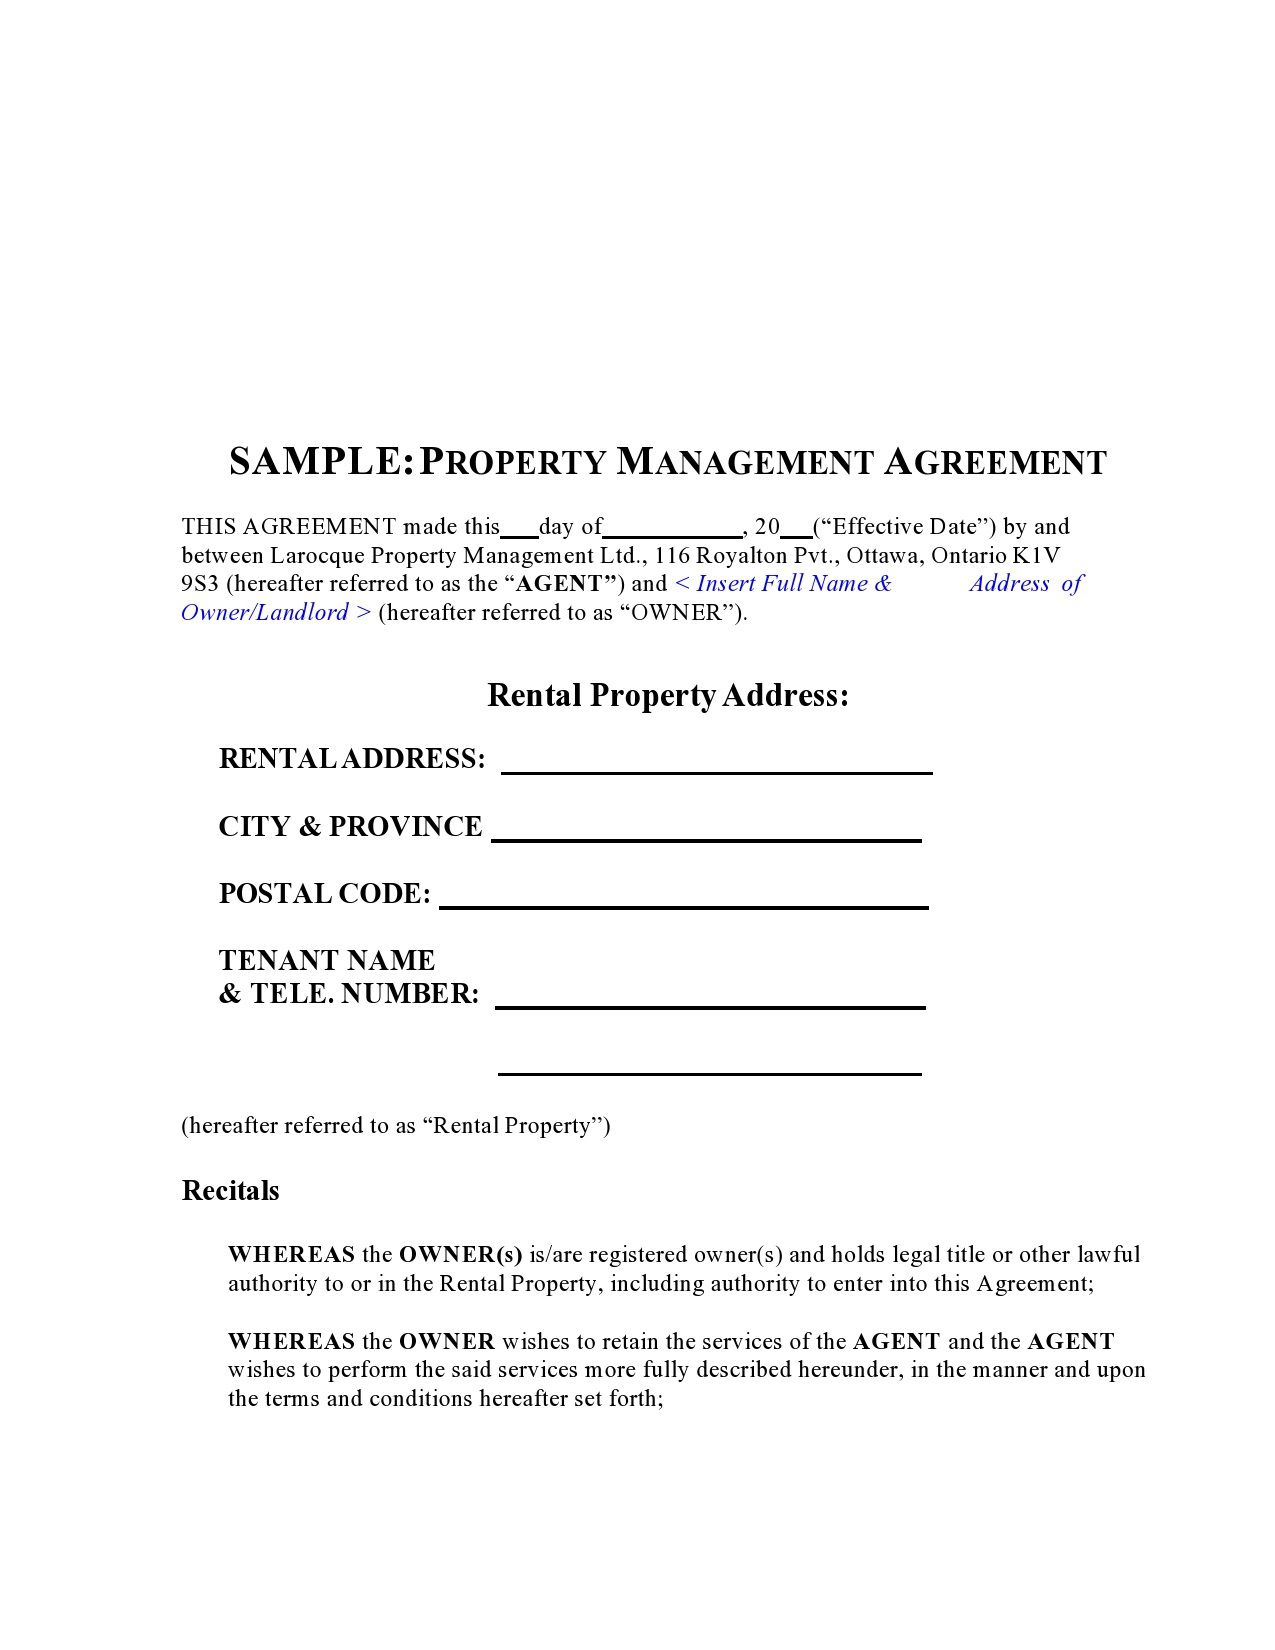 009 Awful Property Management Contract Template Ontario Highest Quality Full